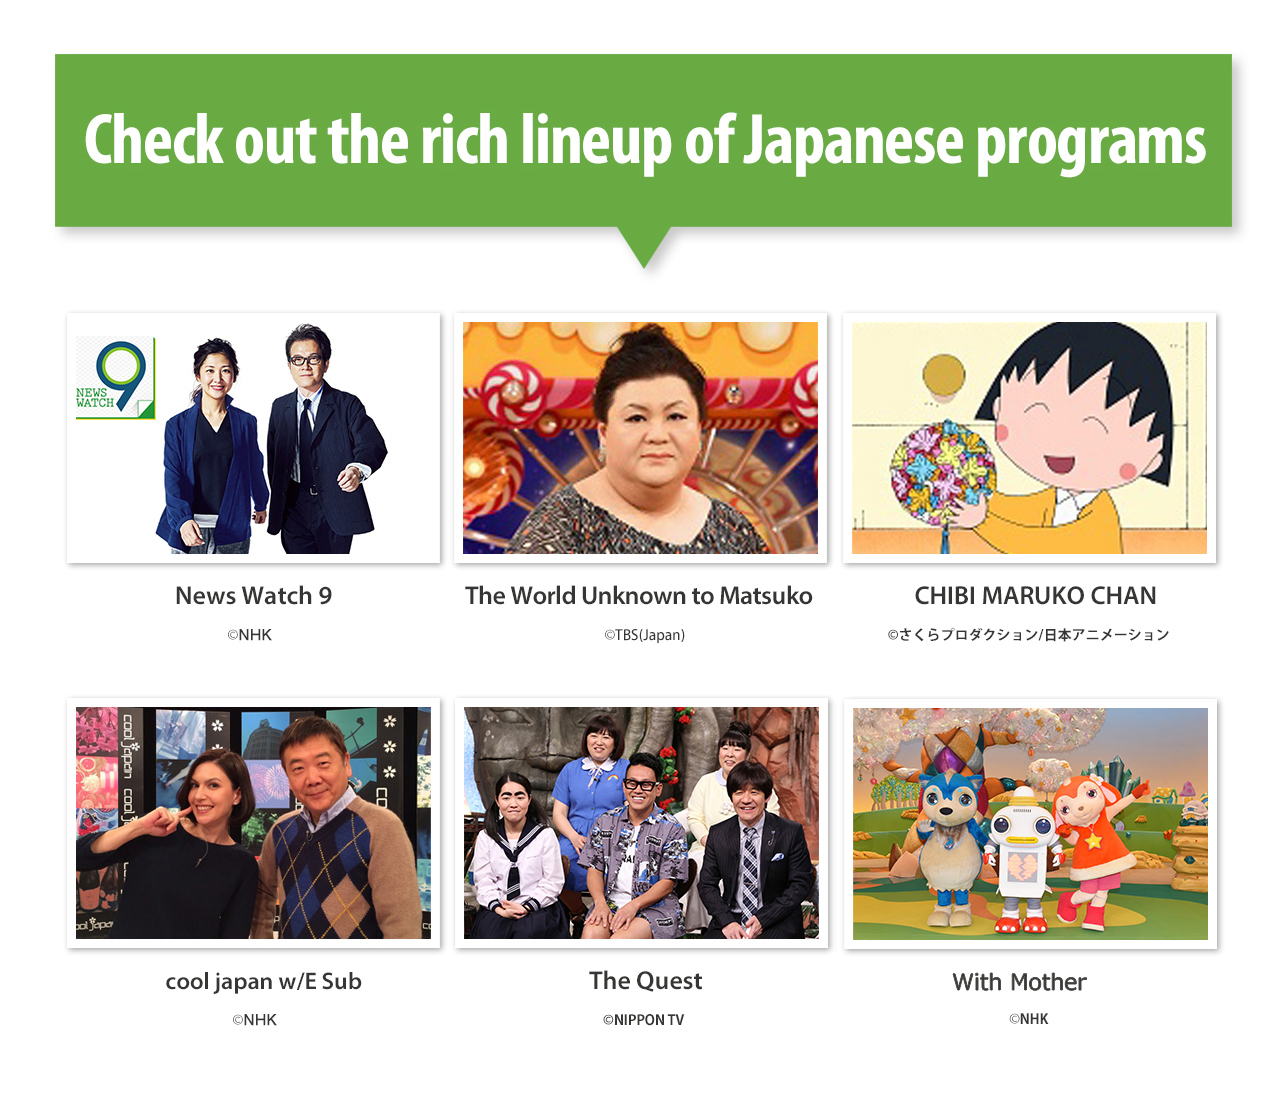 "Check out the rich lineup of Japanese programs. ""News Watch 9""/""The World Unknown to Matsuko""/""CHIBI MARUKO CHAN""/""cool japan w/E Sub""/""The Quest""/""KAMEN RIDER DRIVE"" etc..."